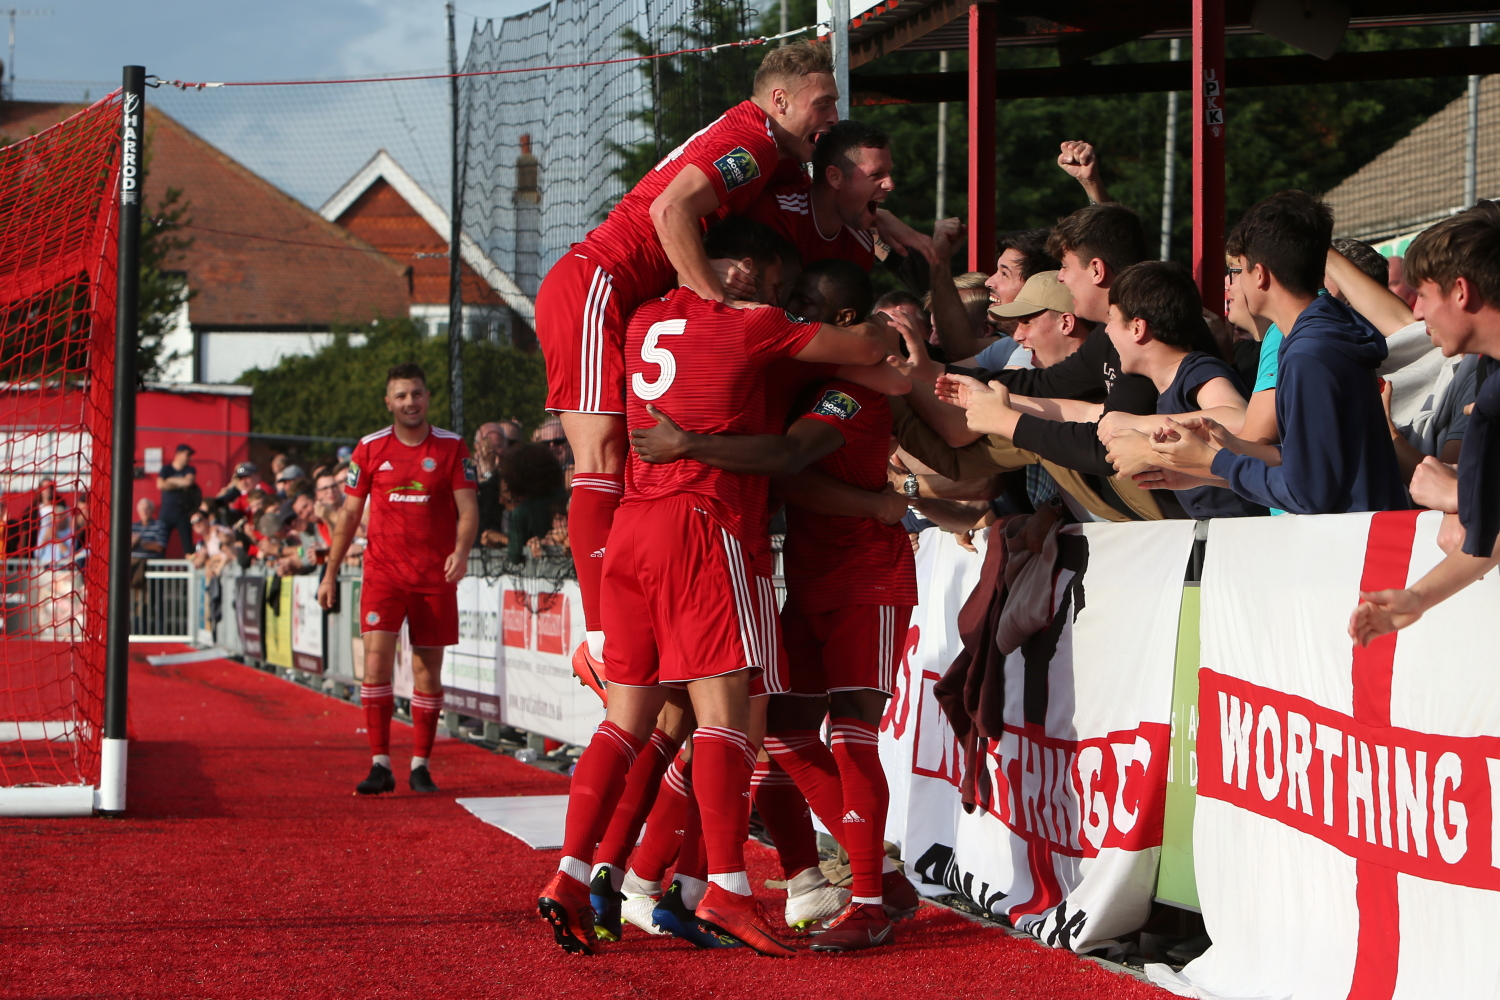 Read the full article - Gallery: Kingstonian [H] – League